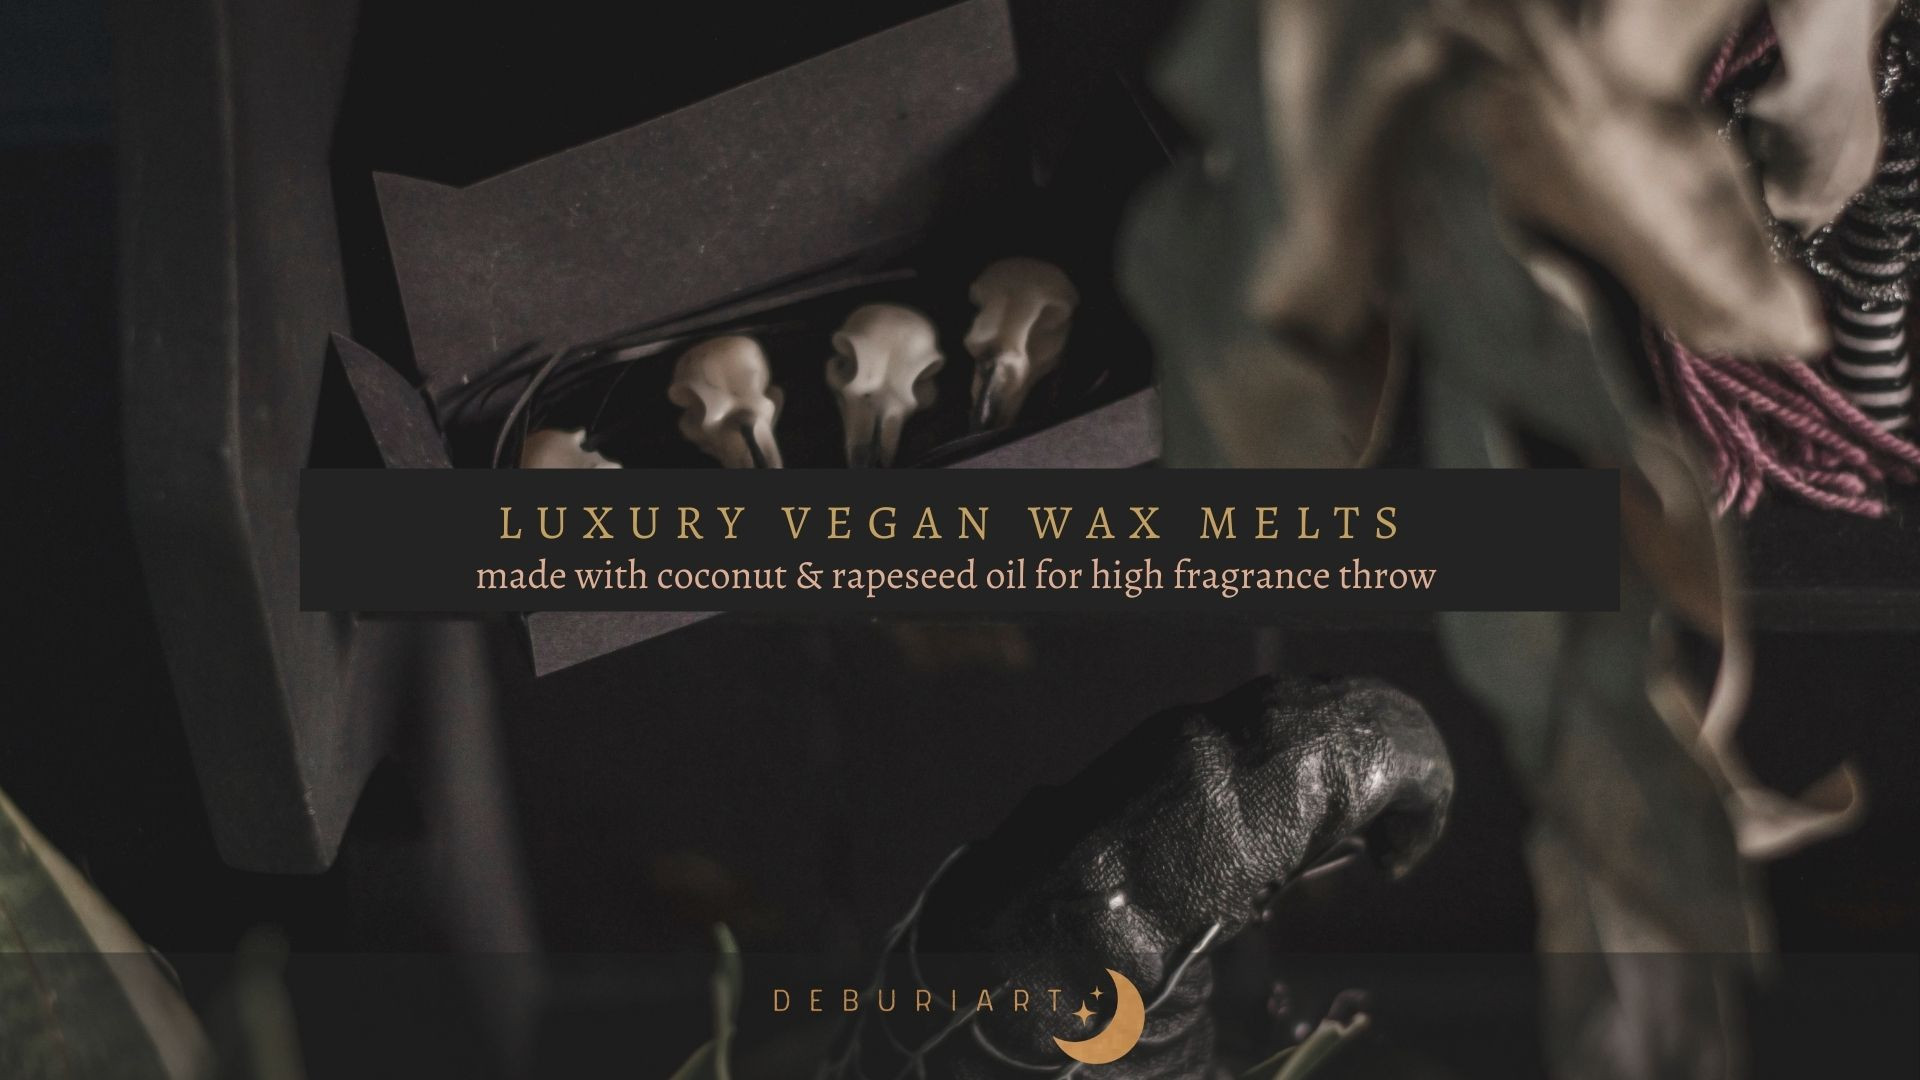 Luxury Vegan Wax Melts